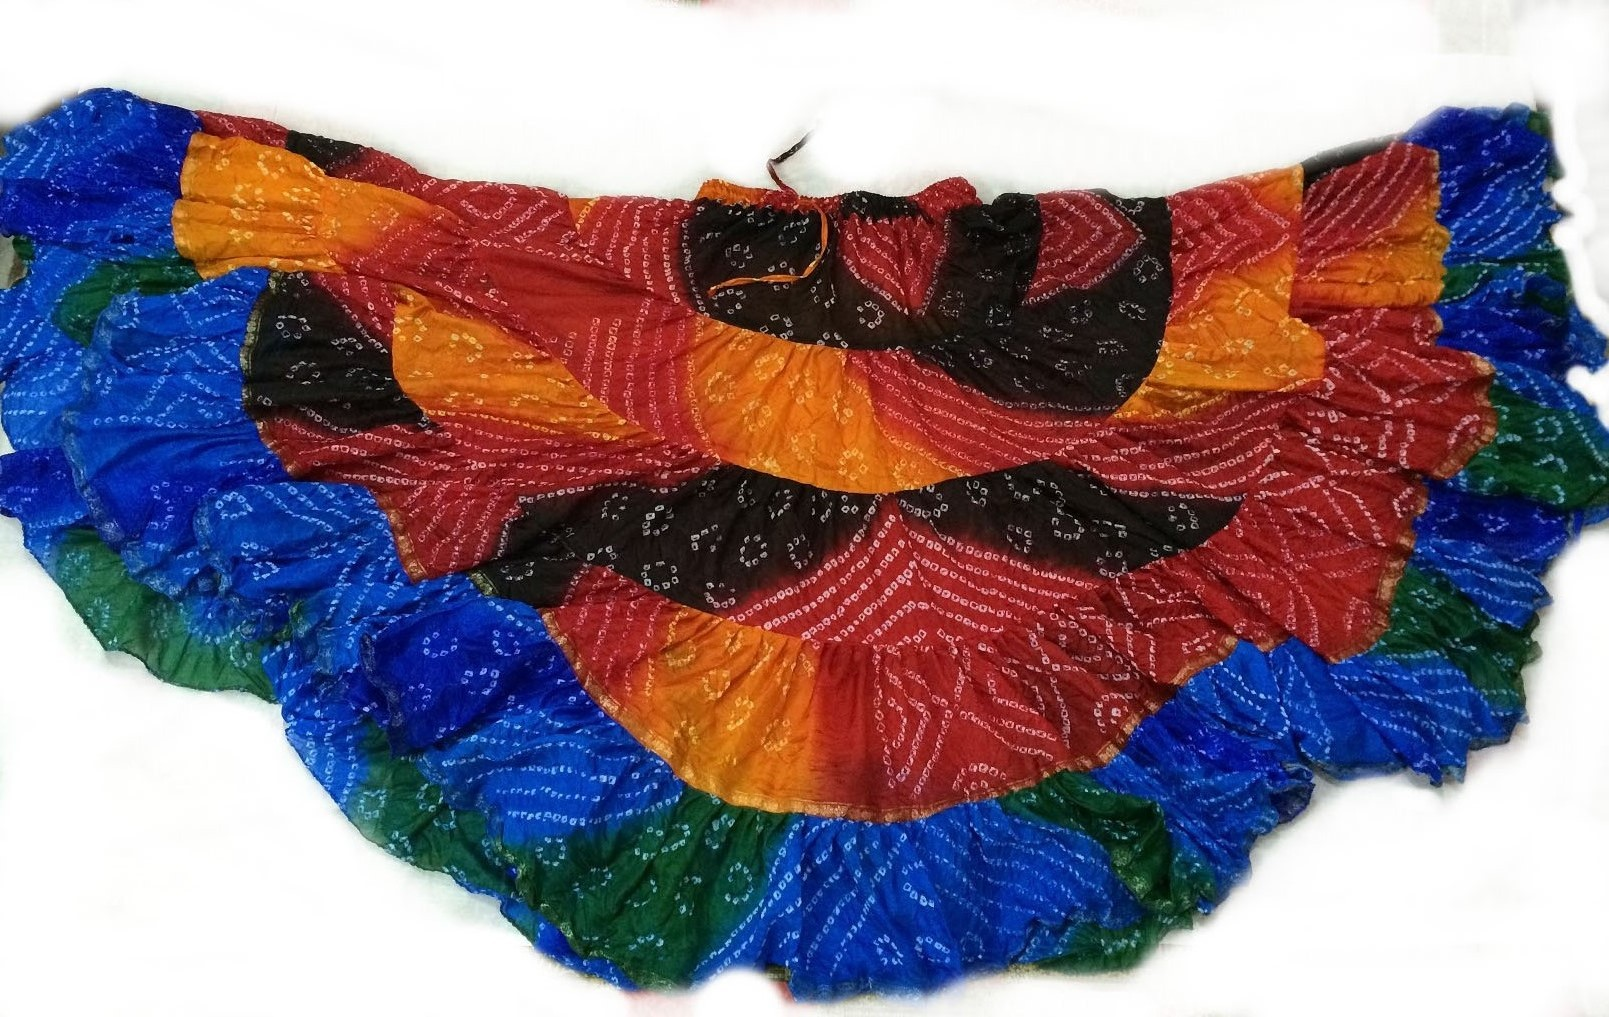 Rainbow gypsy skirt 106